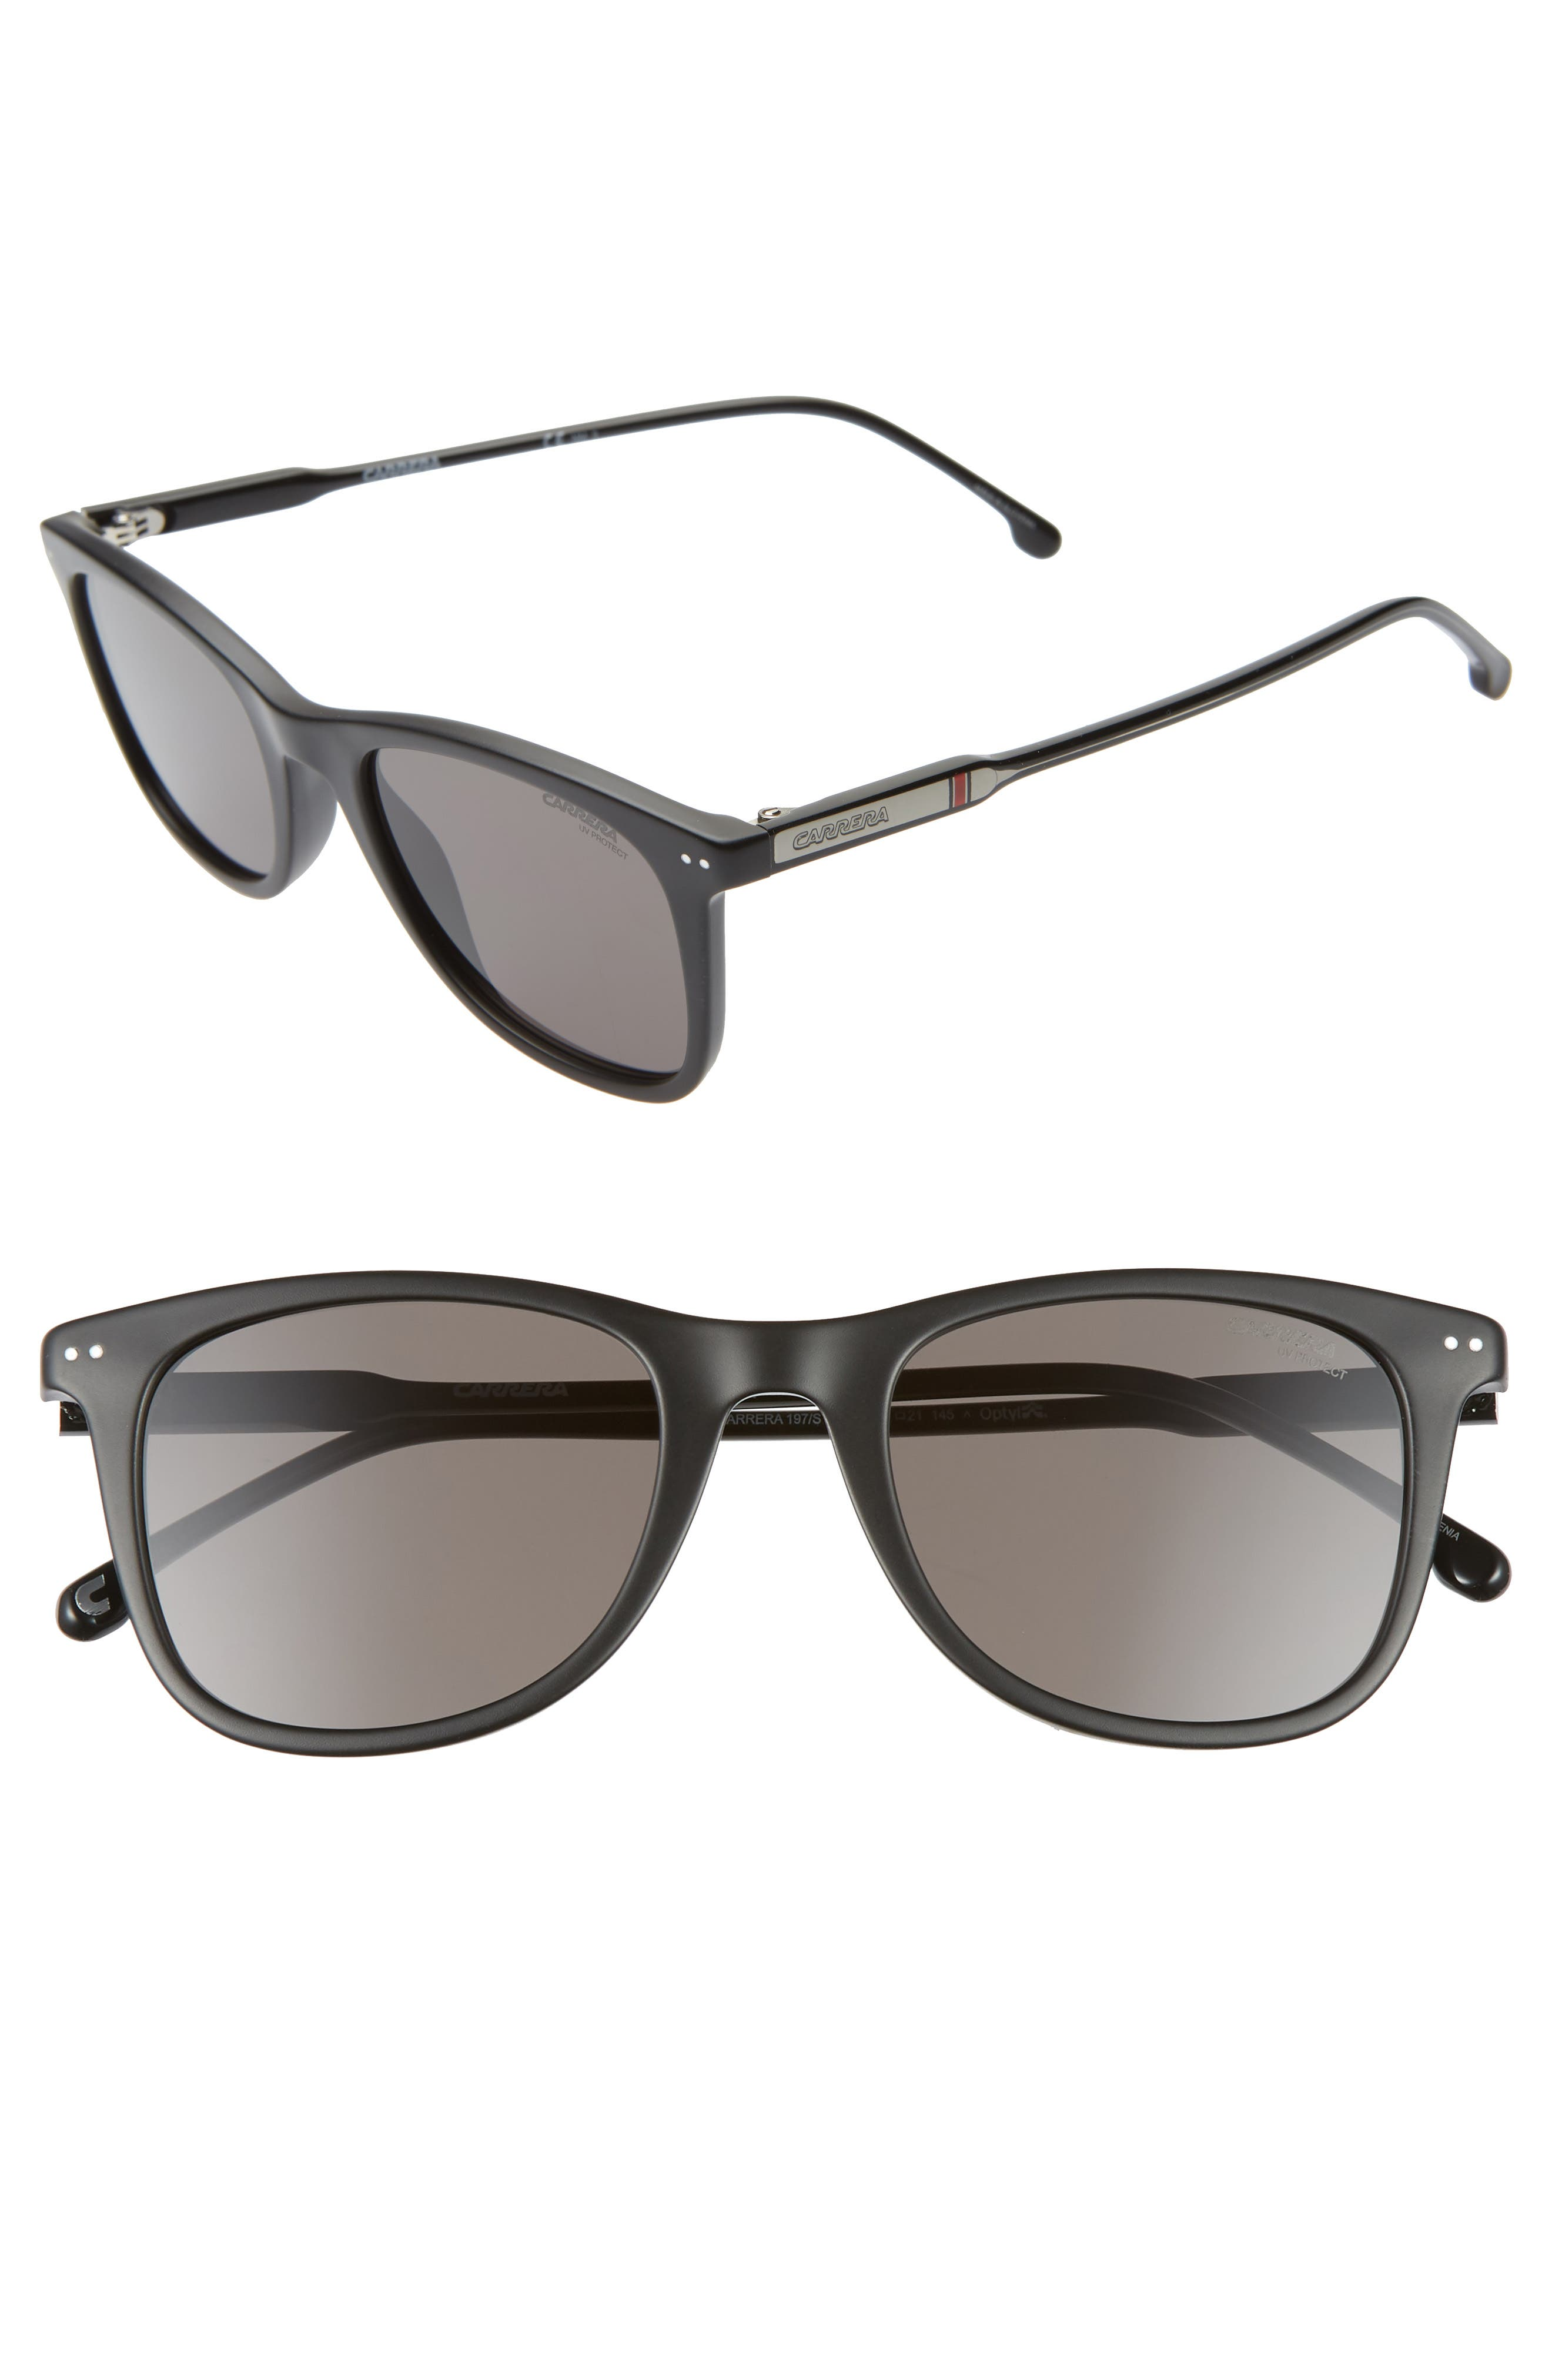 Carrera Eyewear 51Mm Sunglasses - Matte Black